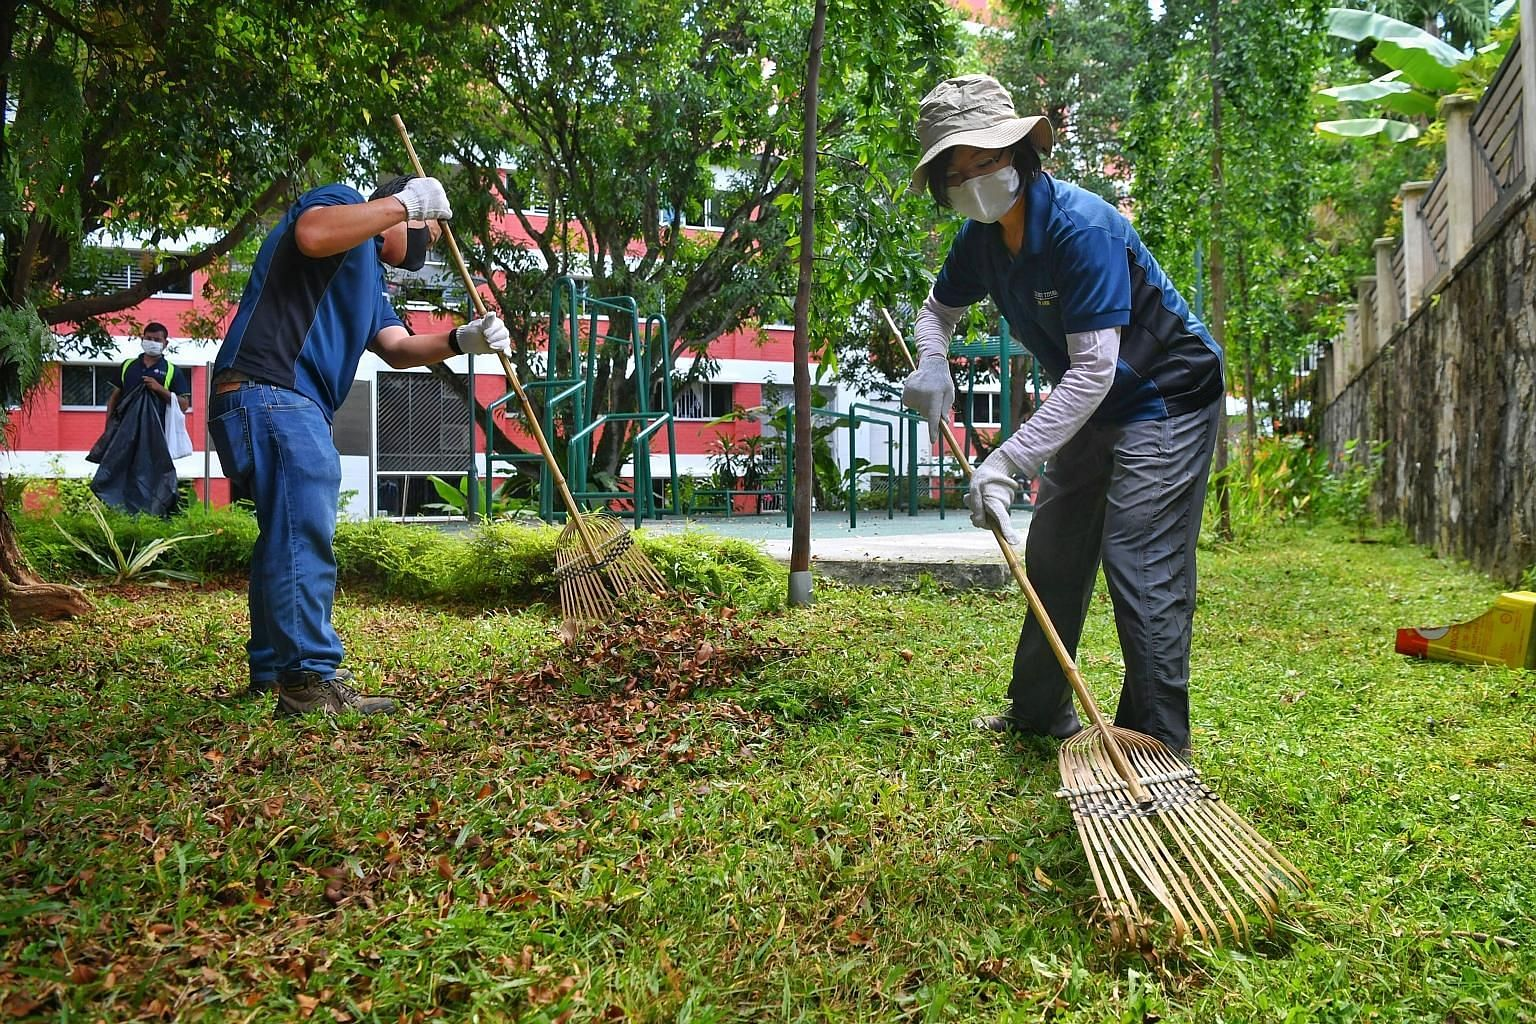 """Senior Minister of State Sim Ann (right), who is an MP for Holland-Bukit Timah GRC, helping to clear the grass after it was cut by migrant workers who volunteered their time yesterday. Ms Sim said: """"I was very touched... that they are willing to come"""